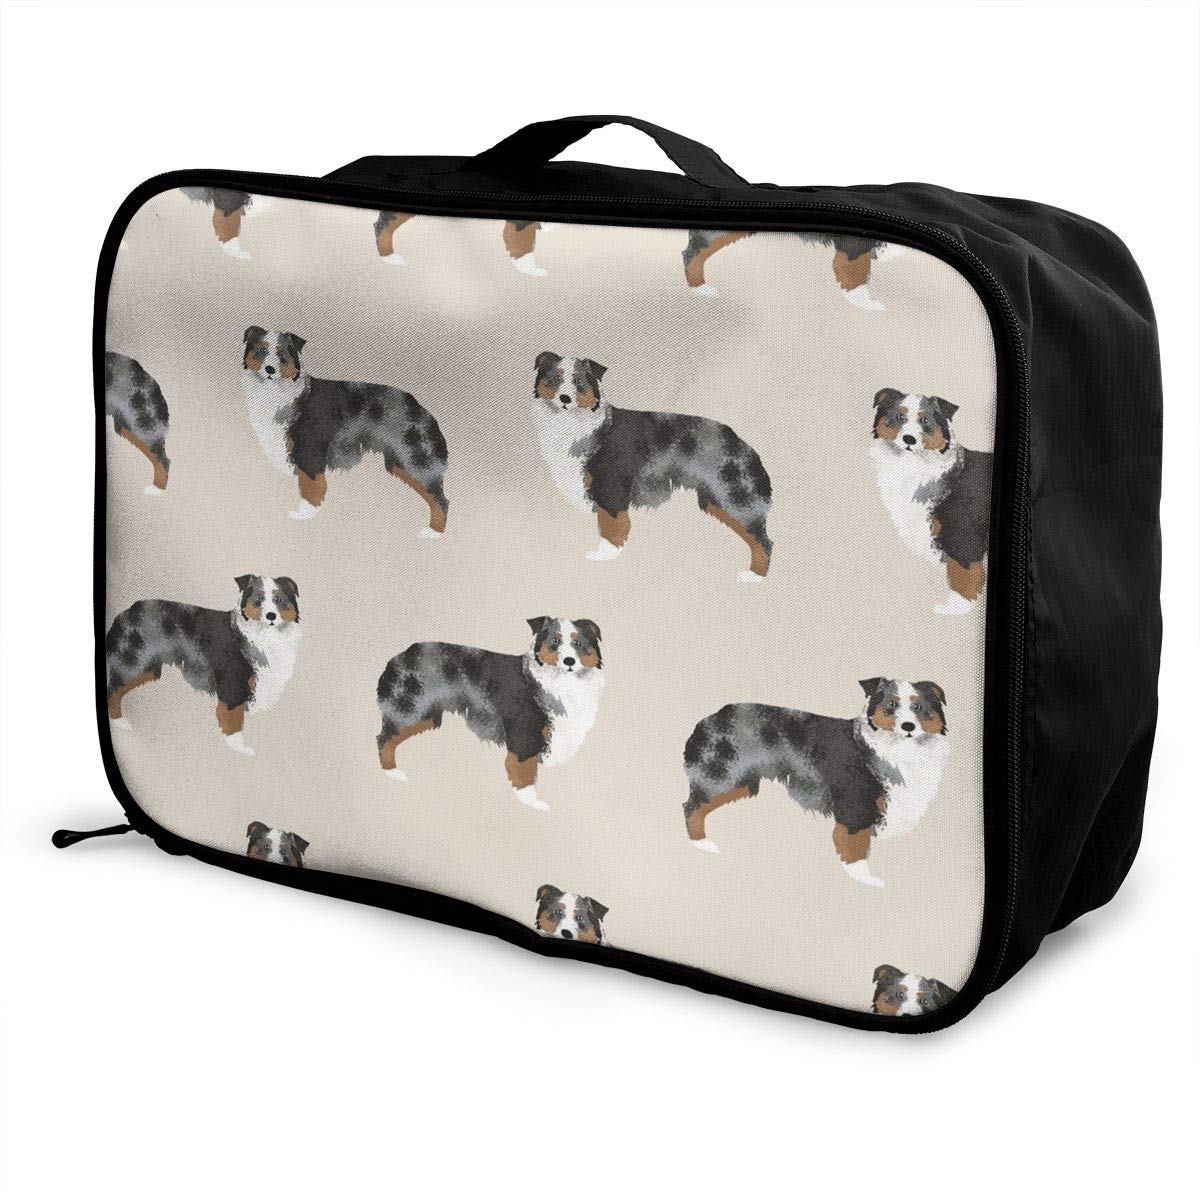 Fashion Australian Cattle Dog Pizzas Travel Duffel Bags 1Pack Waterproof Lightweight Large Capacity Portable Luggage Bag Weekend Bag